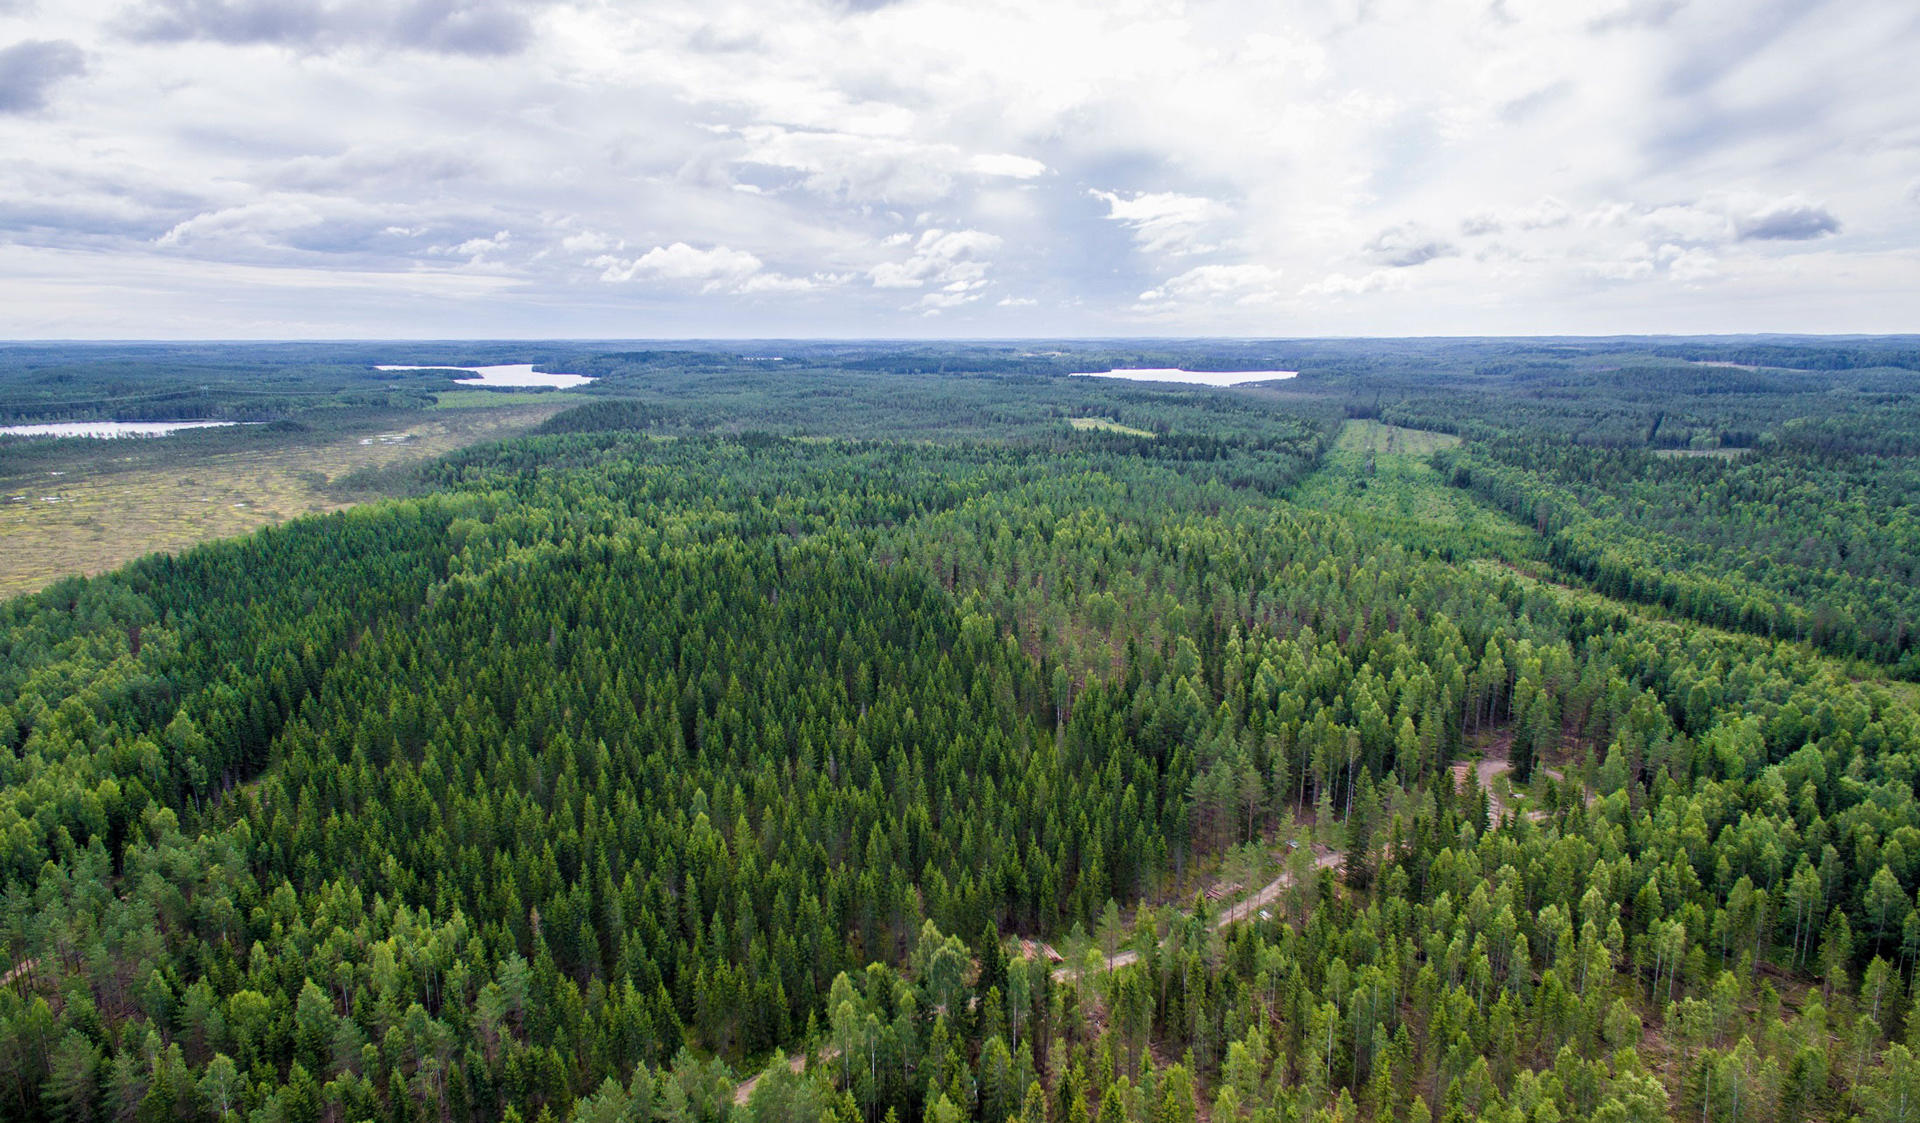 Forest Resources Management and Geoinformation